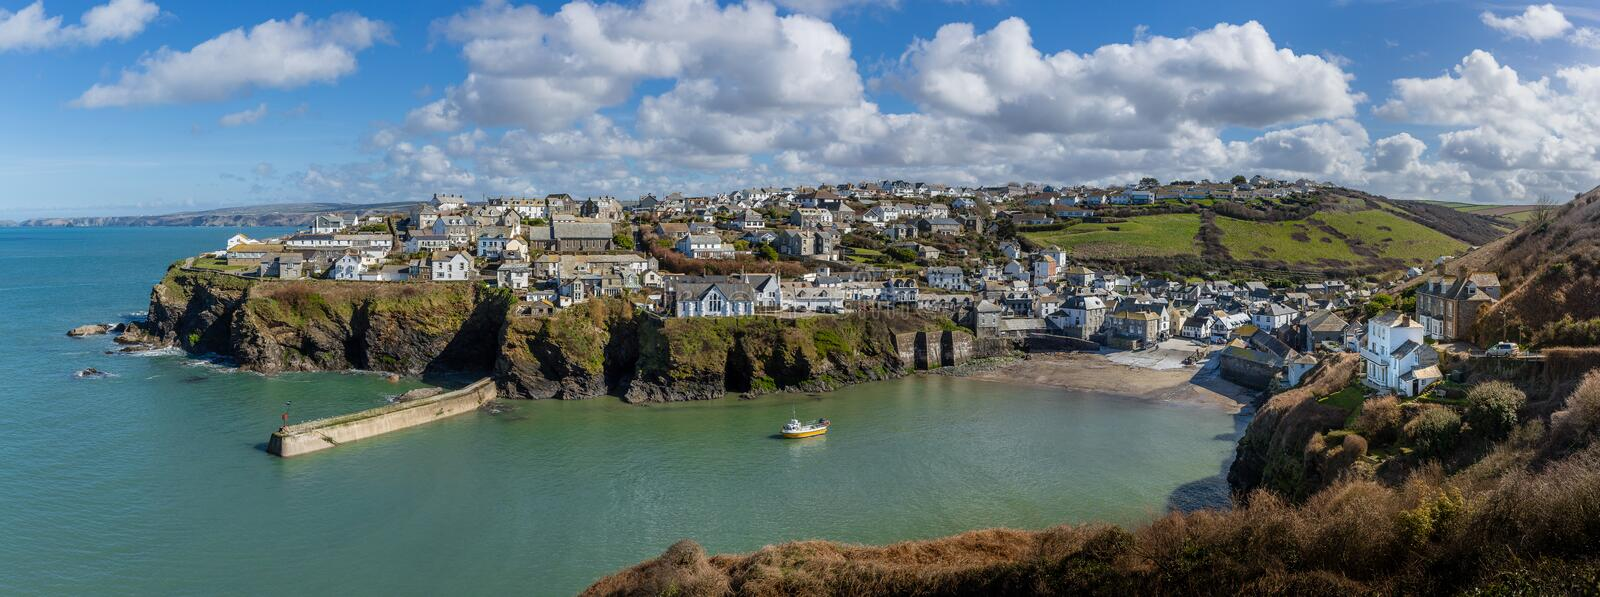 Panoramic view of the pretty fishing harbour of Port Issac in Cornwall, UK royalty free stock photo